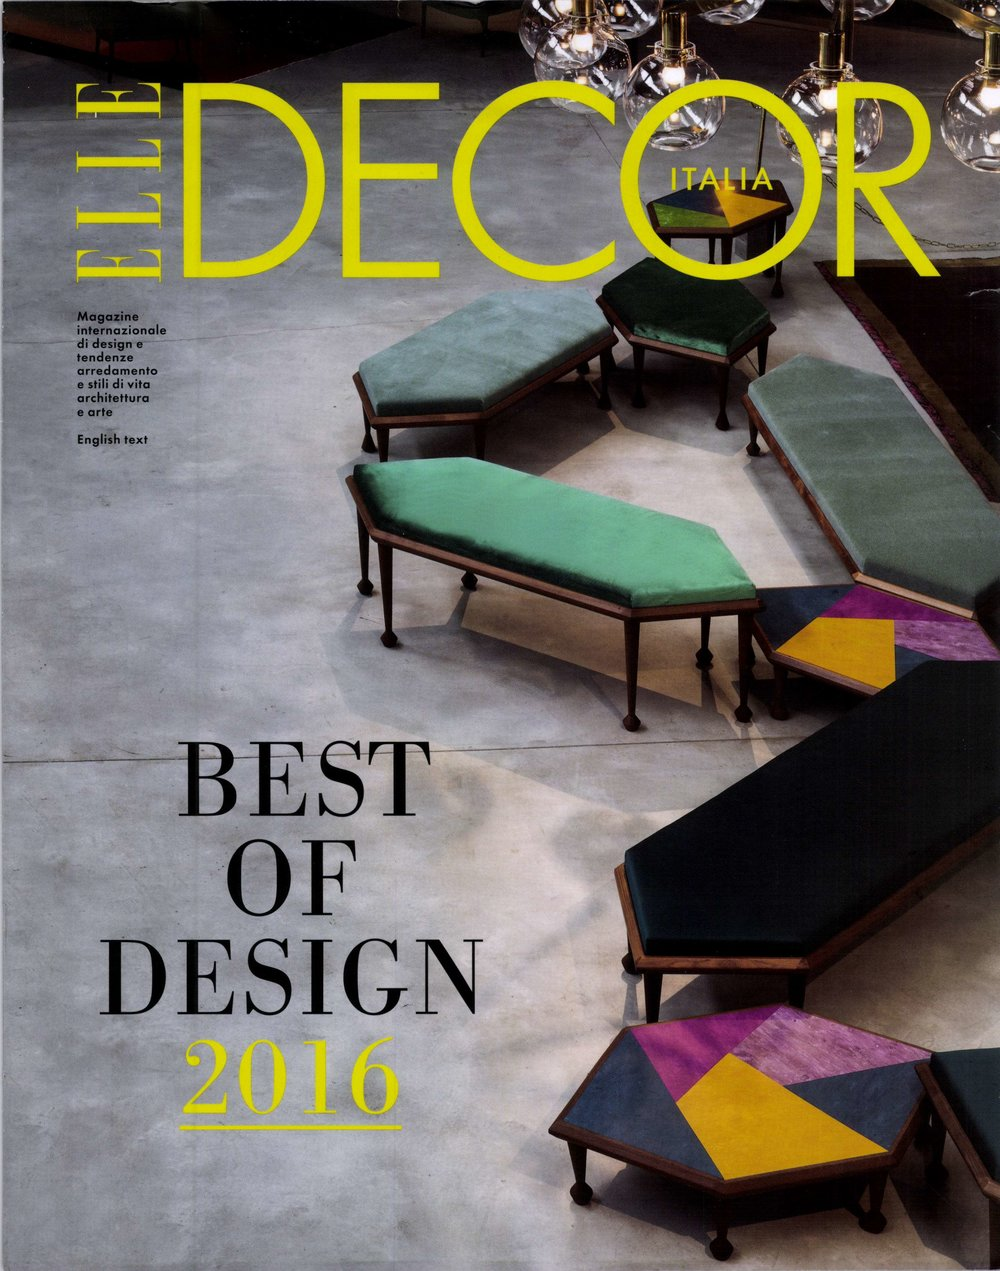 elle-decor-best-of-design-2016-cover-sett.jpg